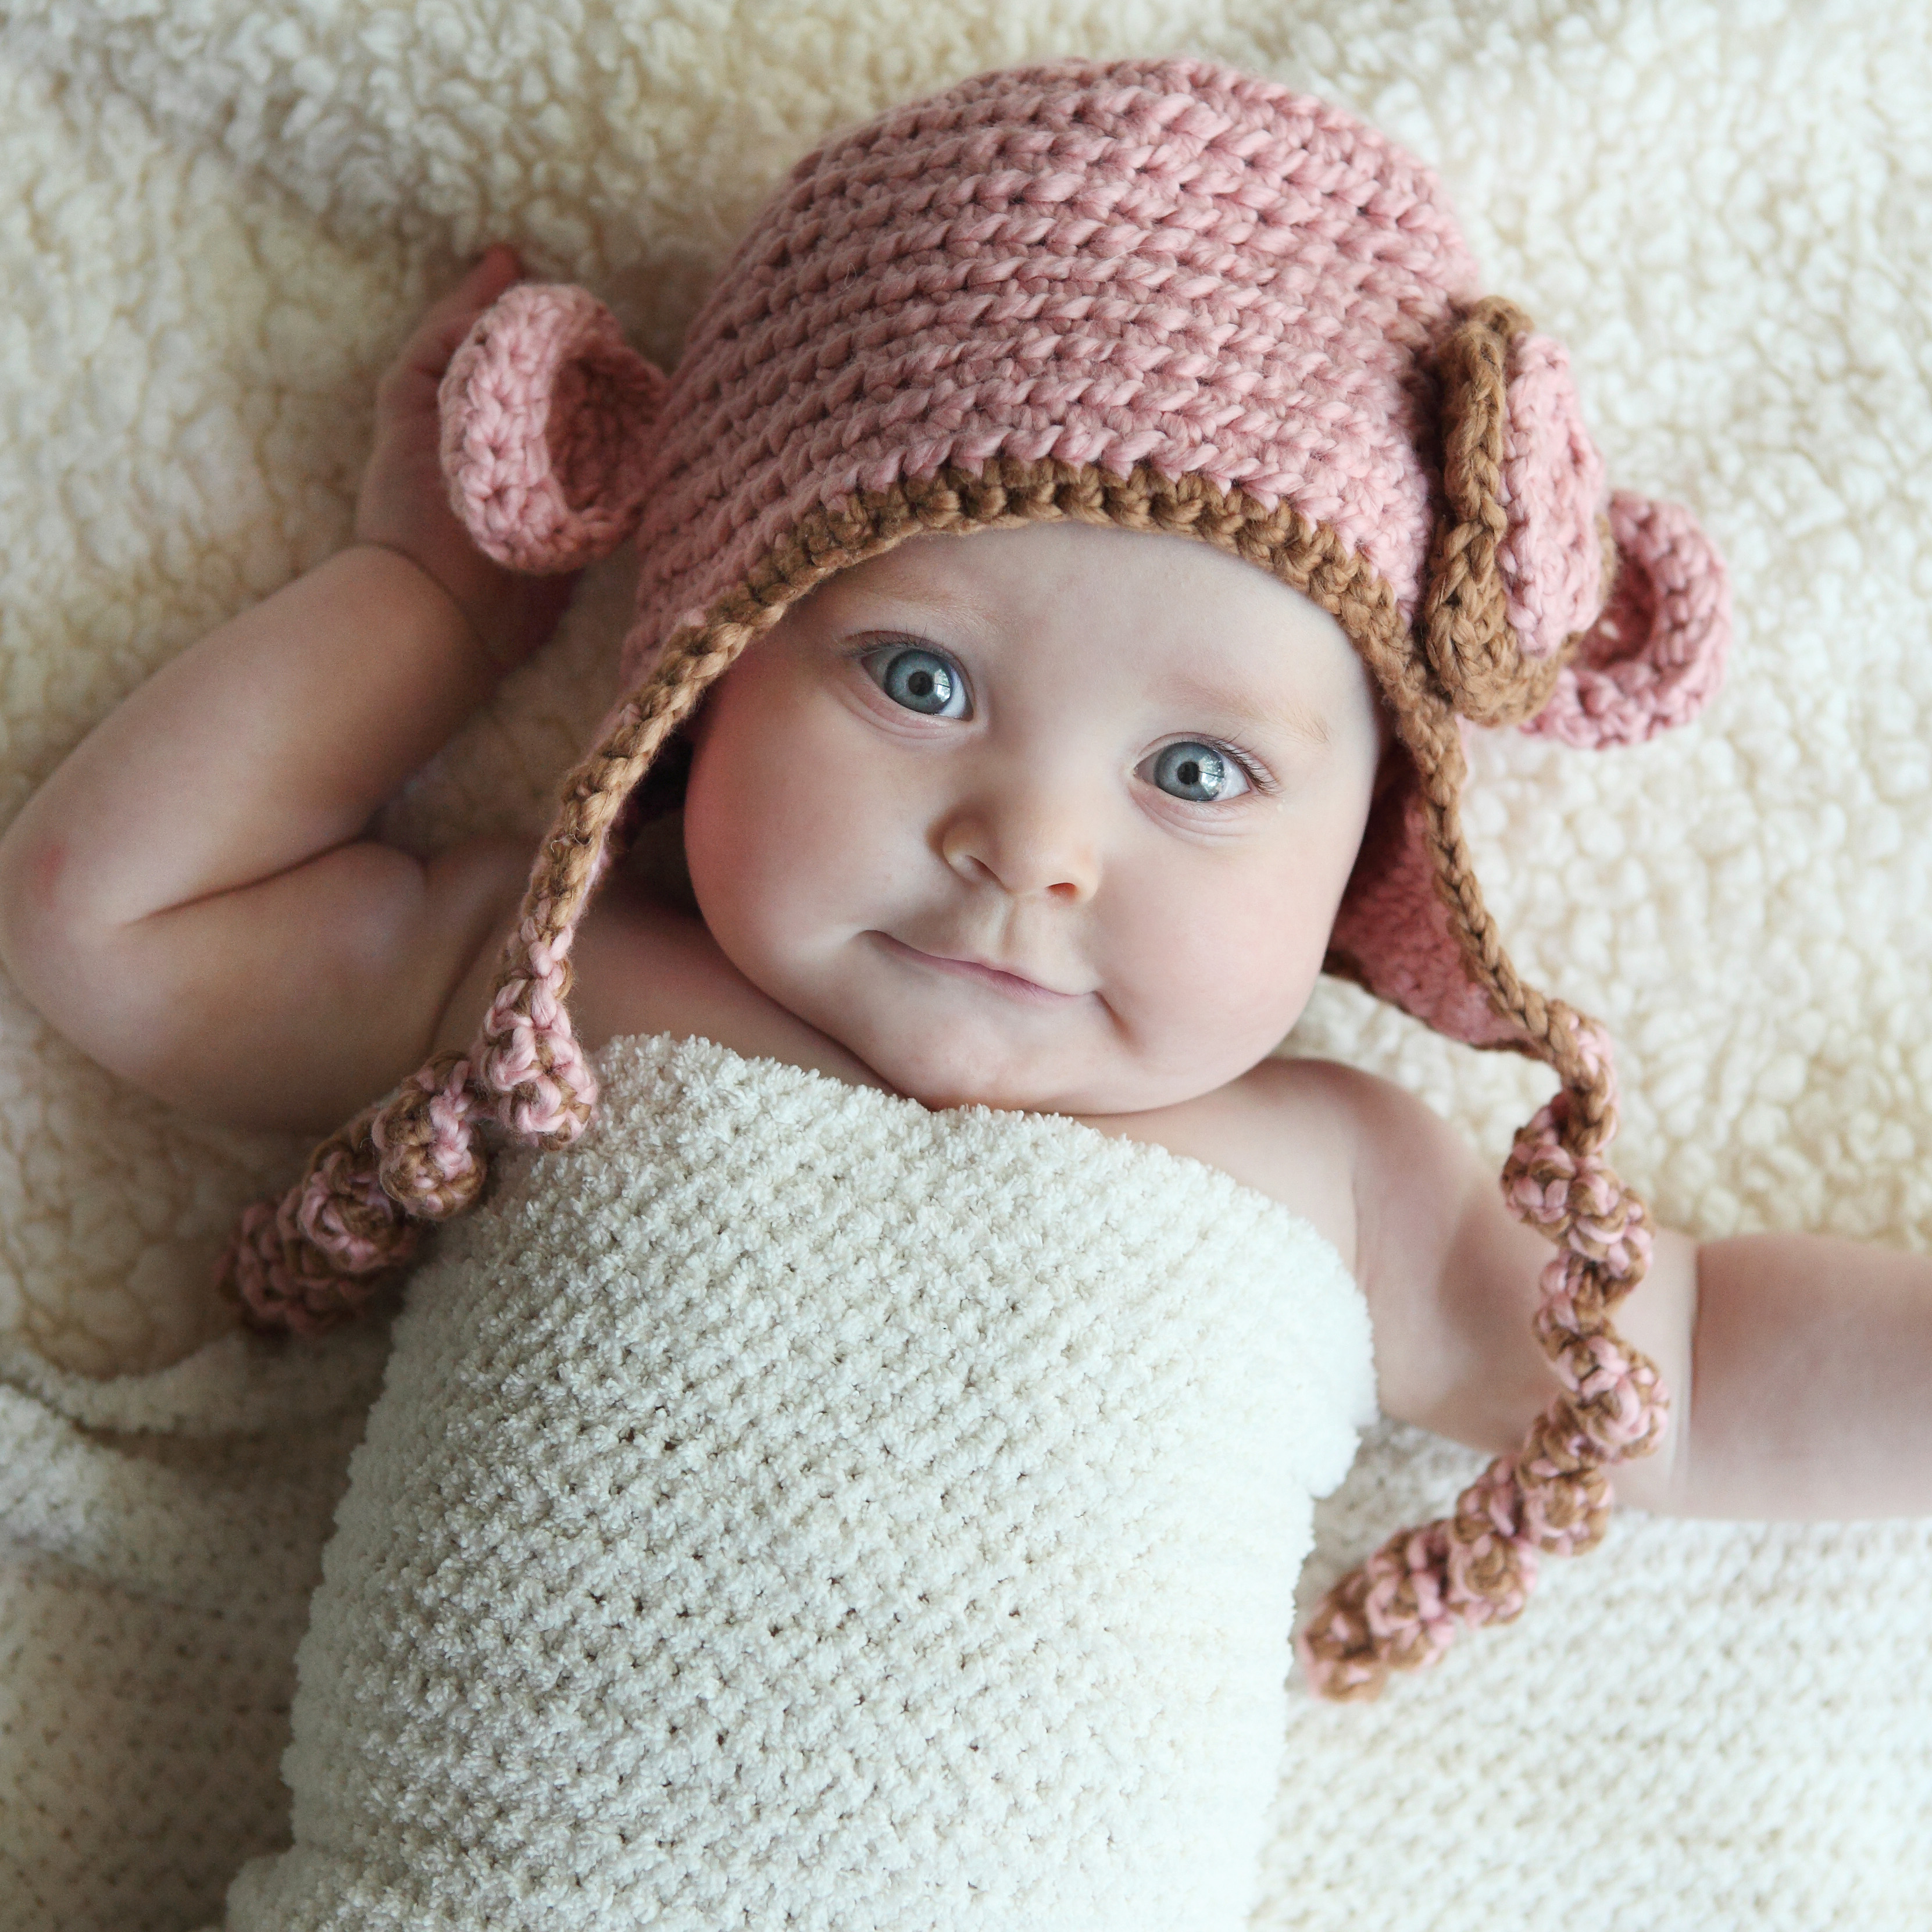 cute baby with blue eyes